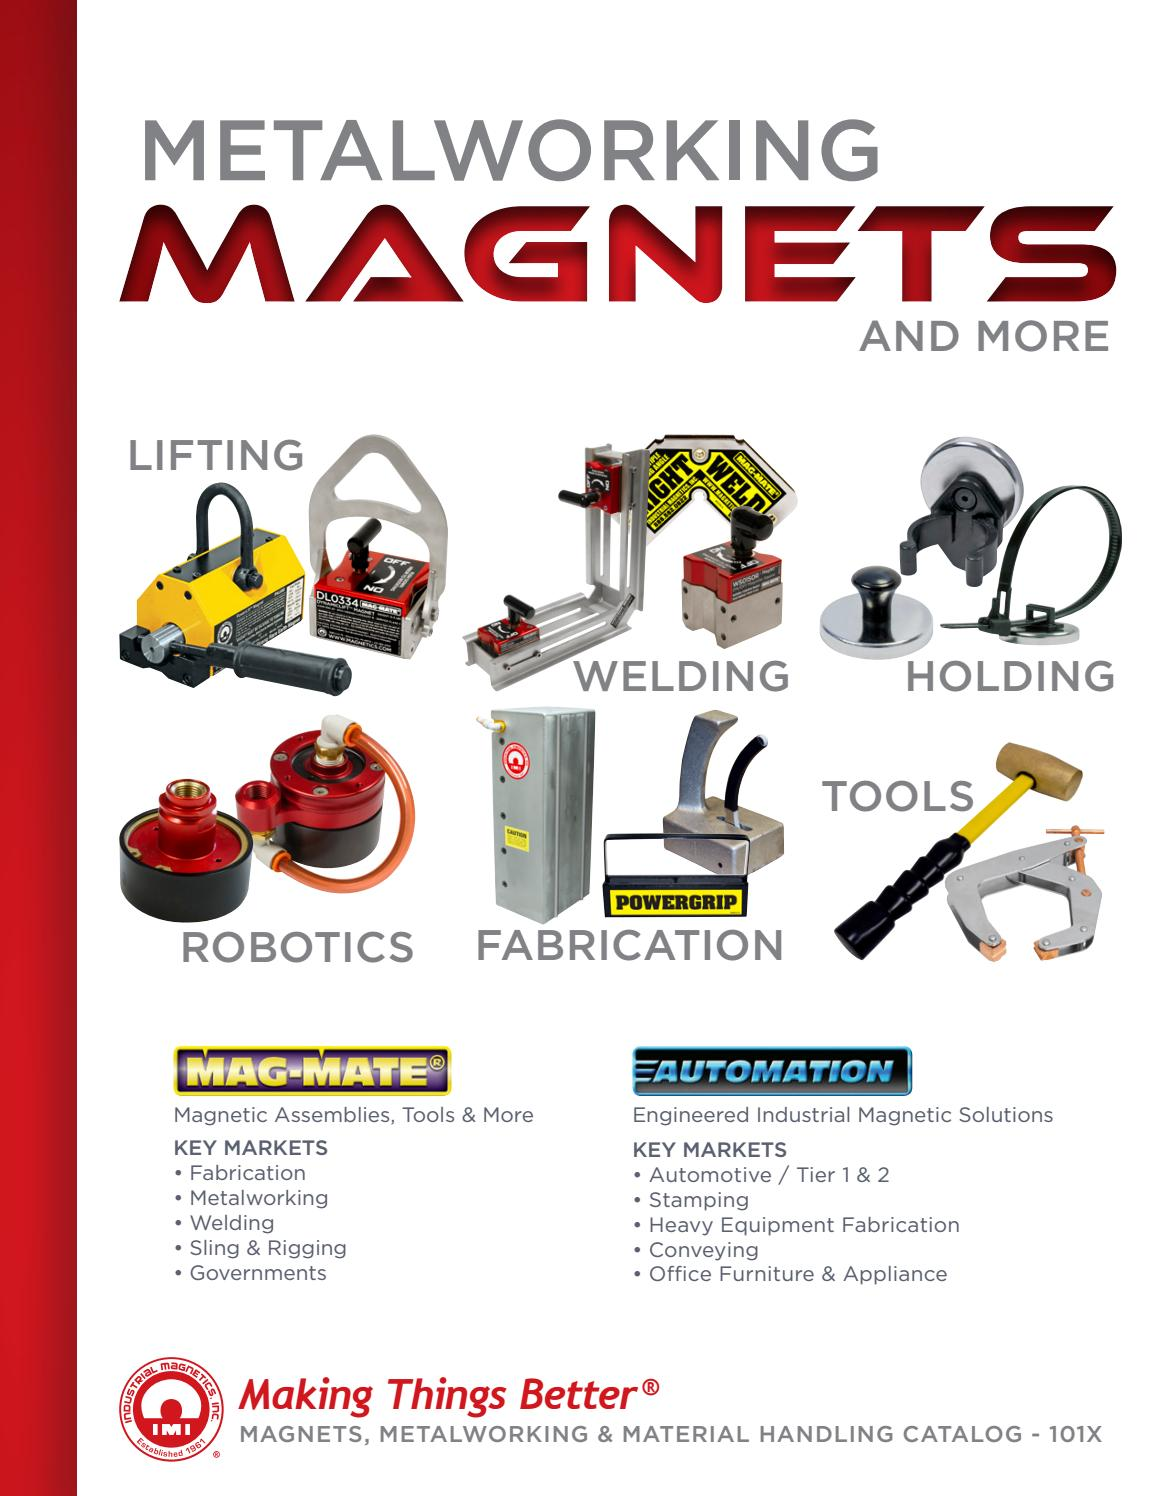 200 lb Magnetic Ground Clamps 600 A